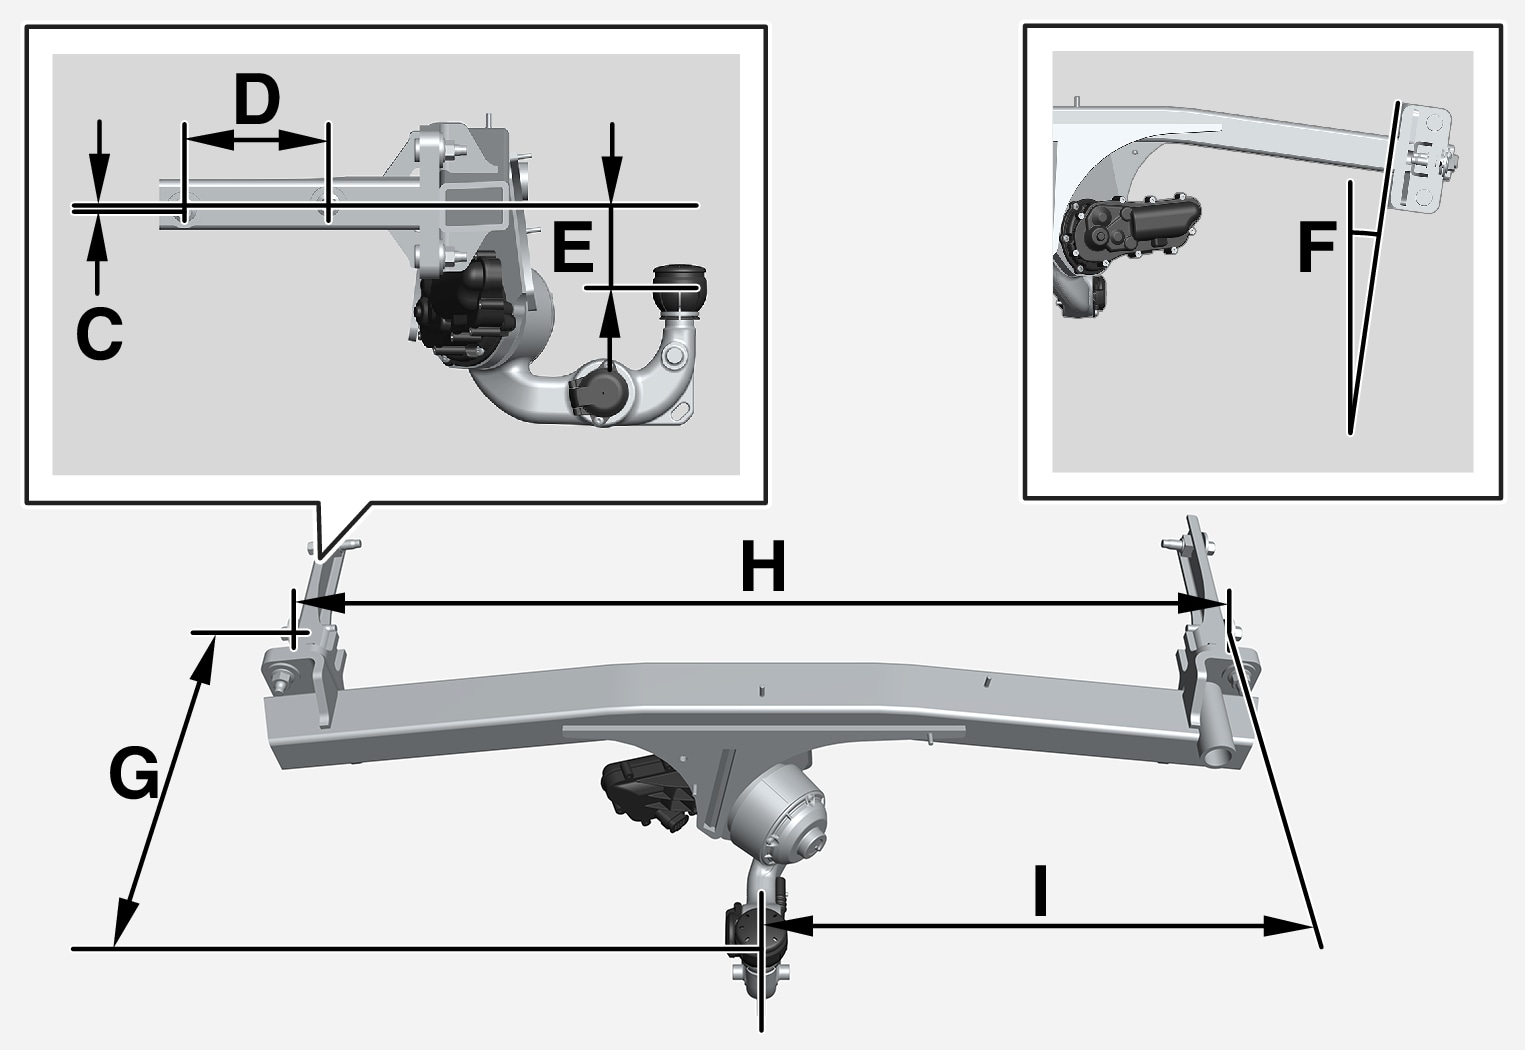 P6-1746-XC40-Tow bar specification